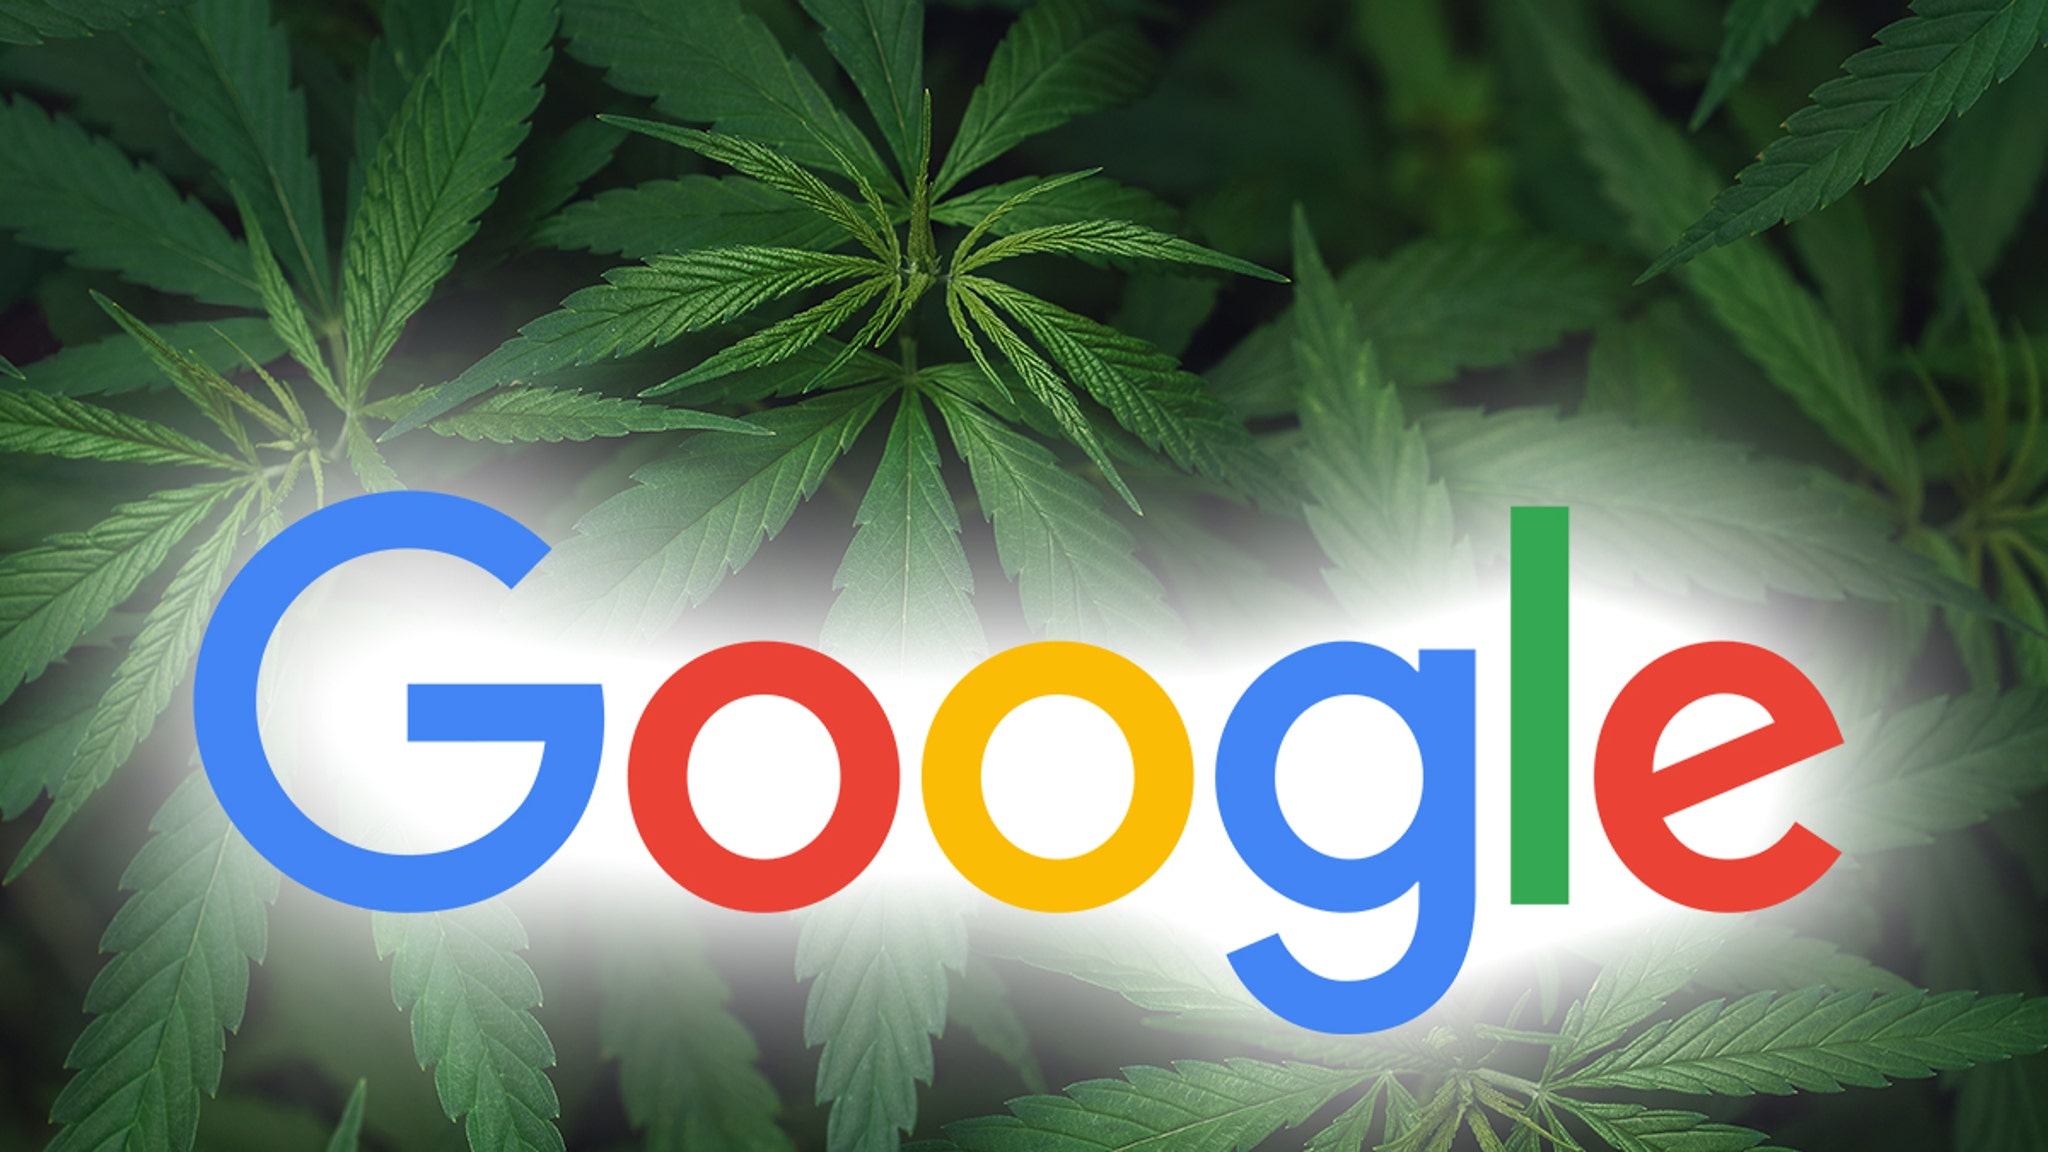 New Jerseyites Google 'How to Roll a Joint' After Vote Legalizes Weed